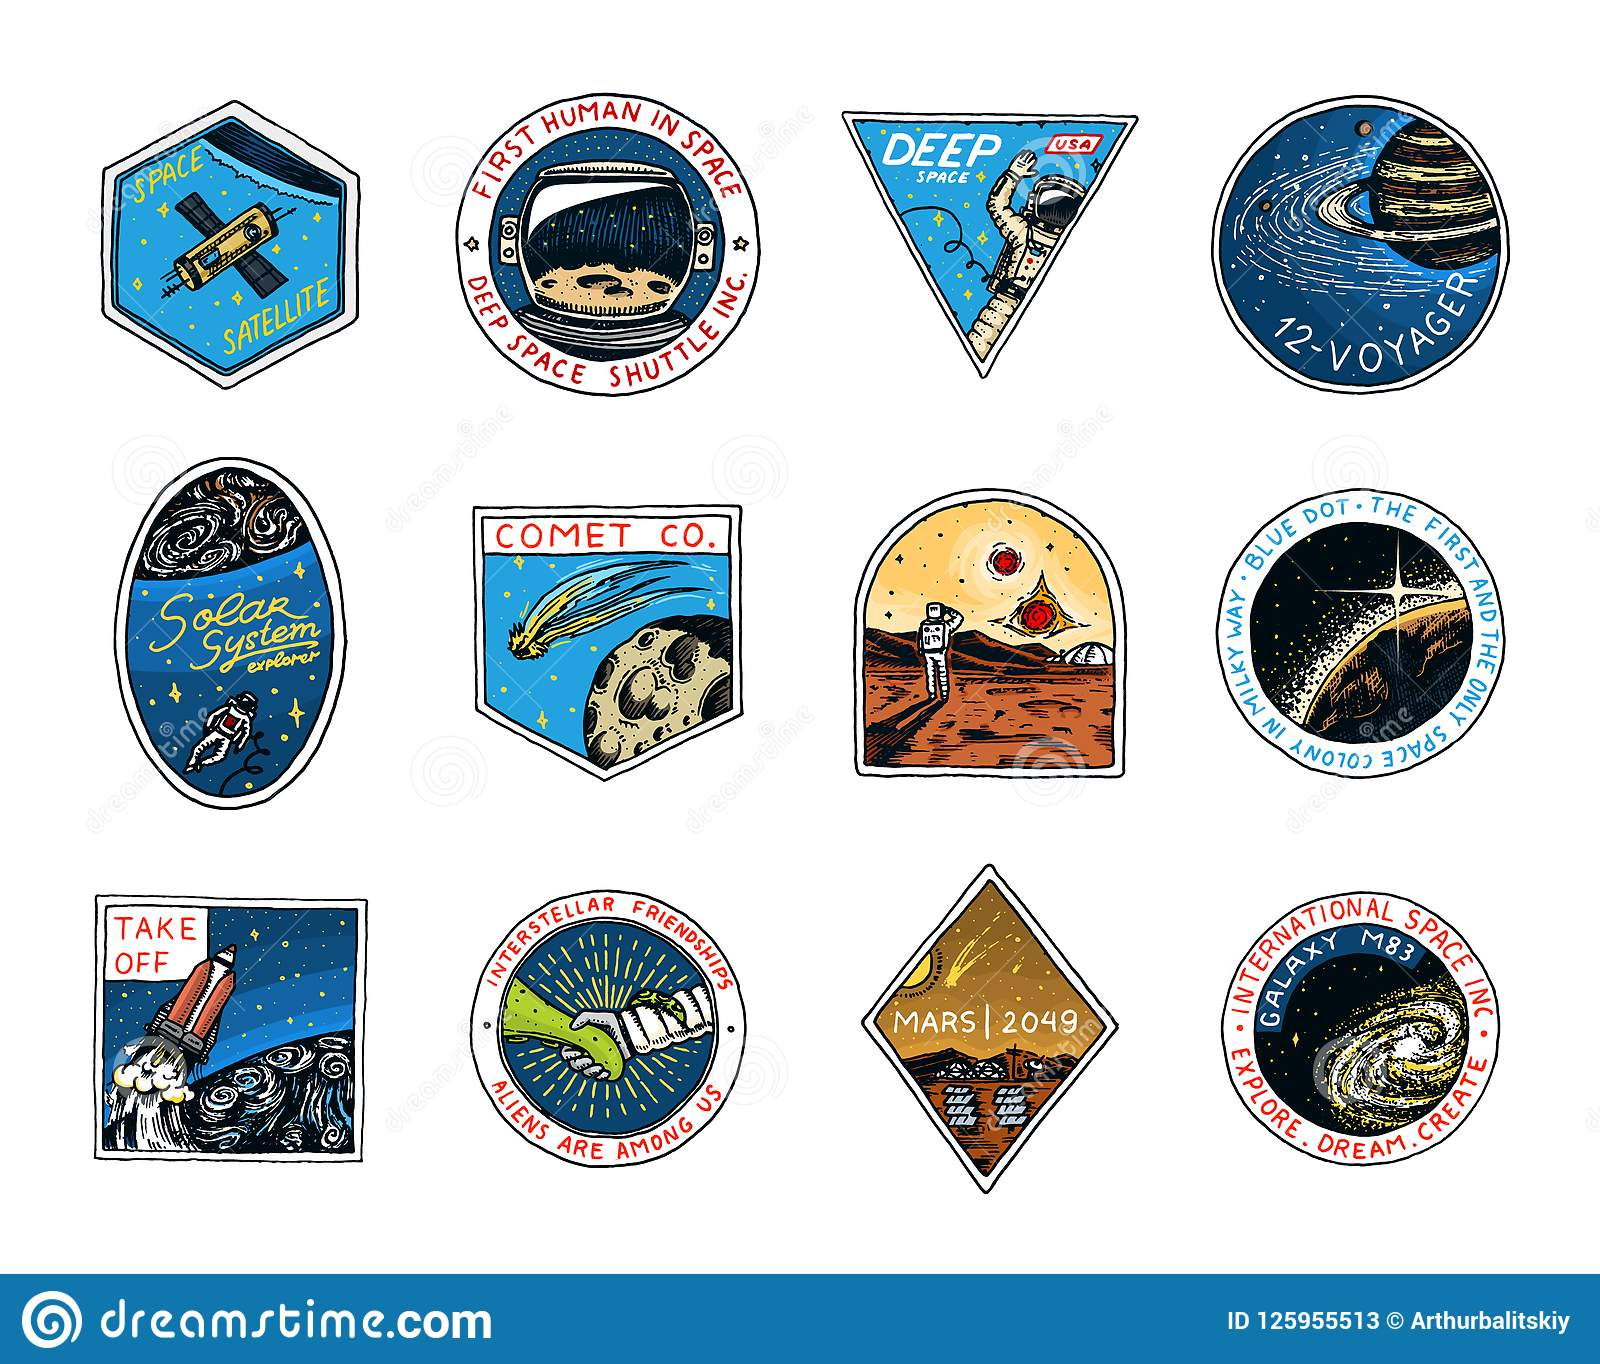 Space logo. Exploration of the astronomical galaxy. Mission Mars. Astronaut or spaceman adventure. Planets and